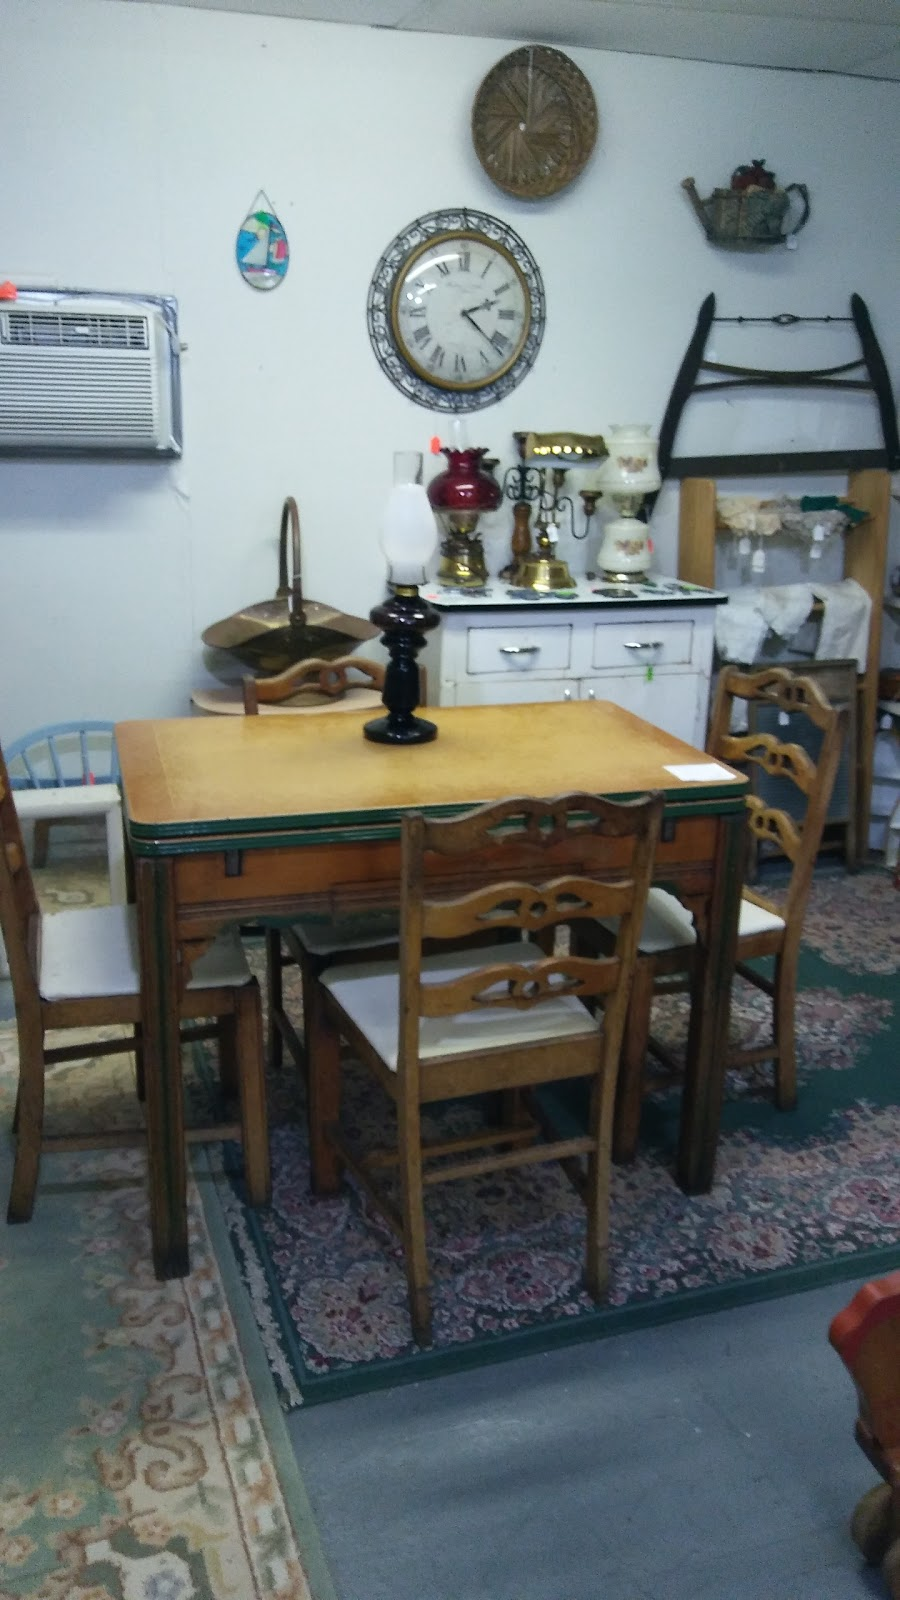 Capt. Scrap Antiques, Collectibles and More - home goods store  | Photo 9 of 10 | Address: 602 Washington Ave, Woodbine, NJ 08270, USA | Phone: (609) 861-3800